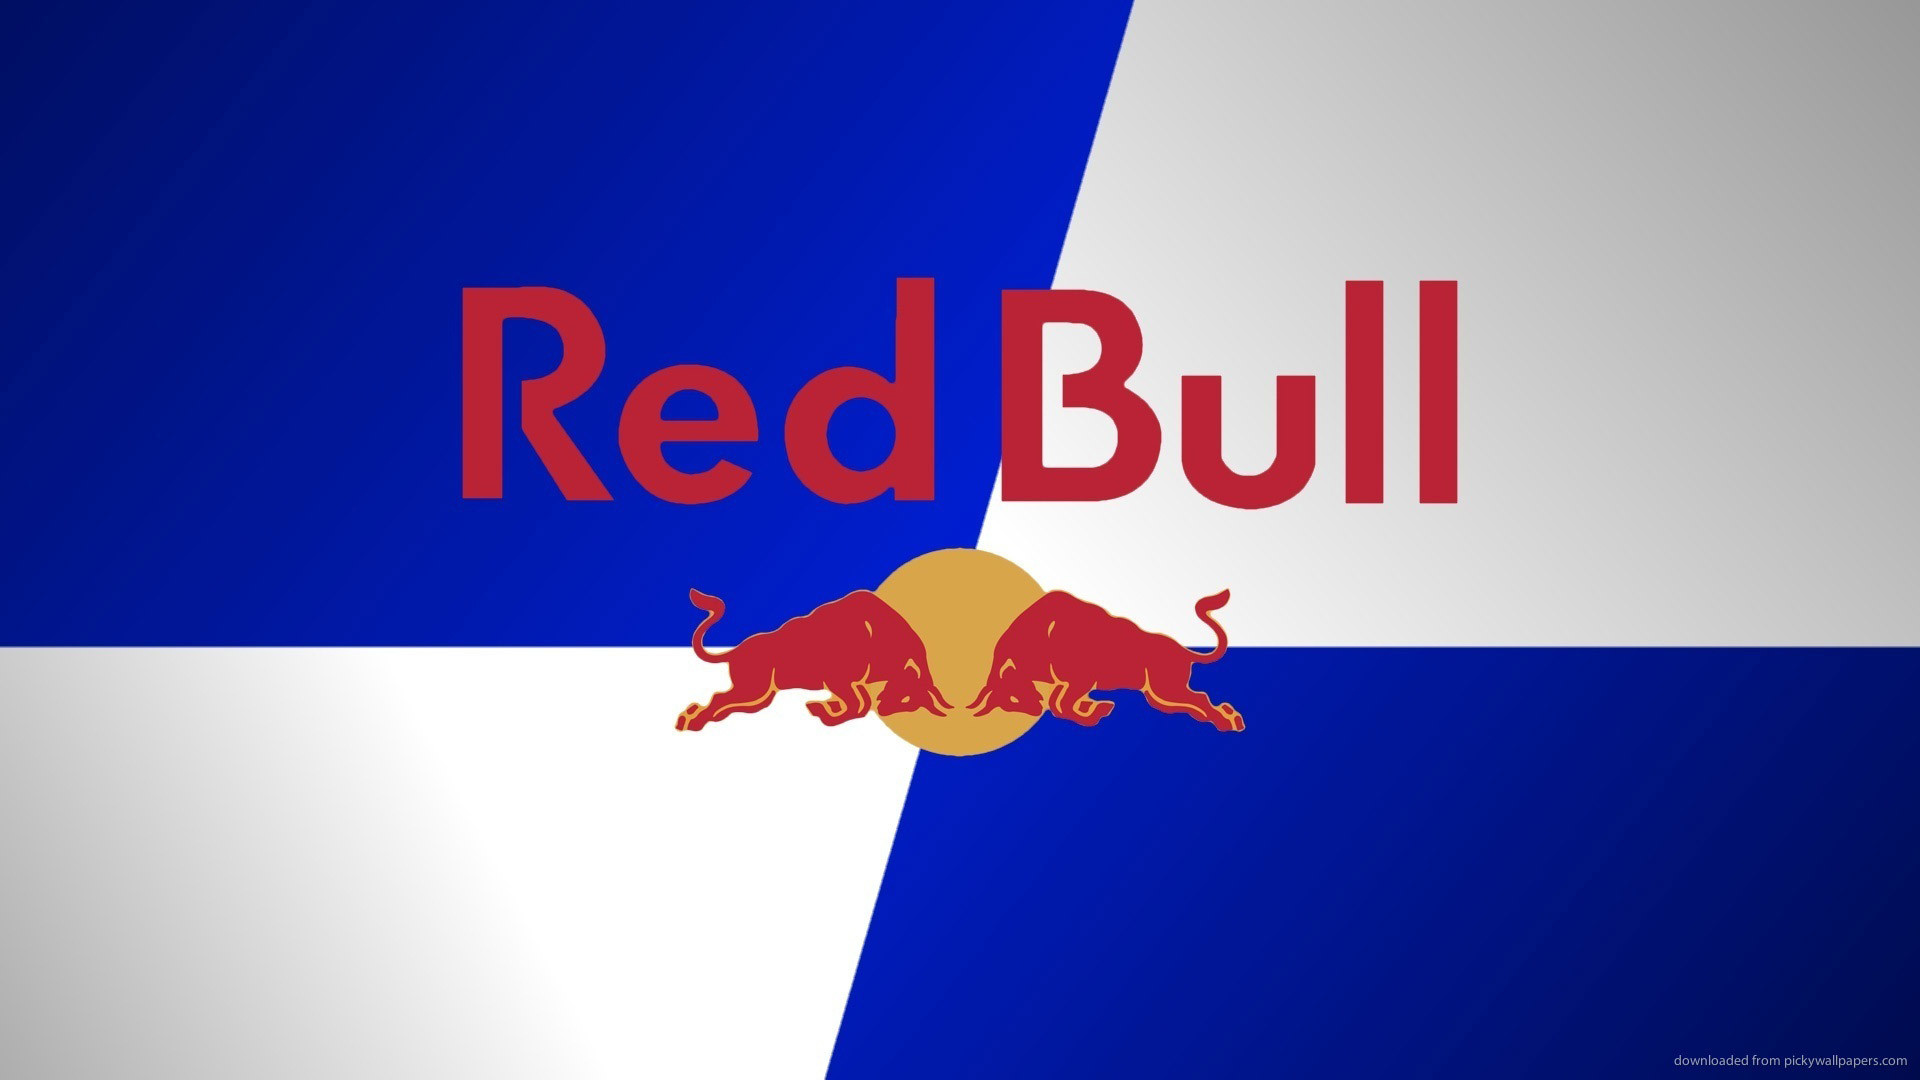 1920x1080 Red Bull HD Wallpaper. « »